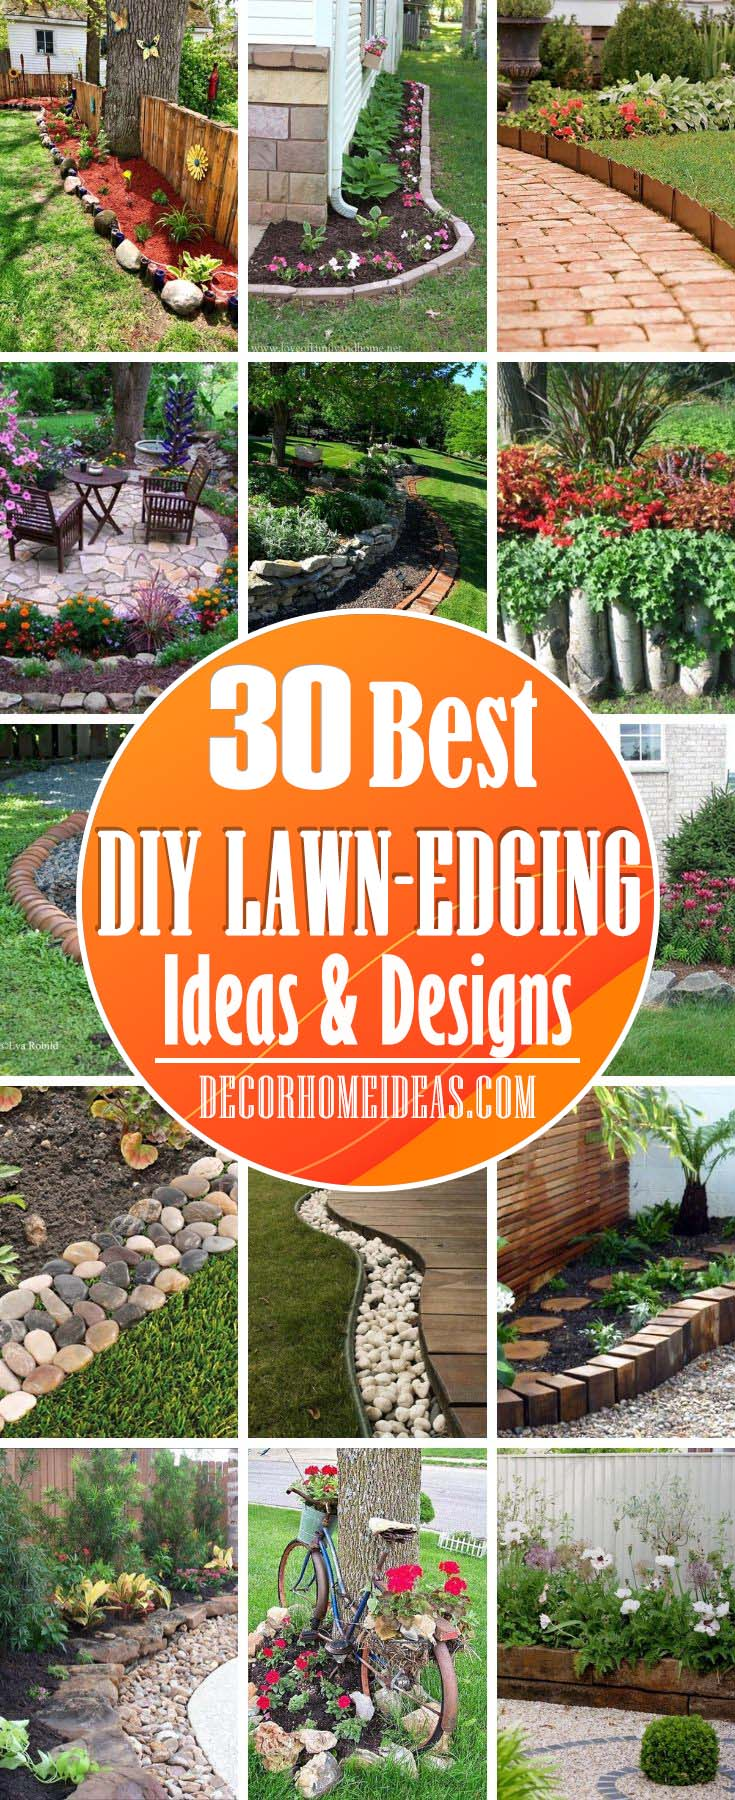 25 Amazing Lawn Edging Ideas For Your Garden Decor Home Ideas